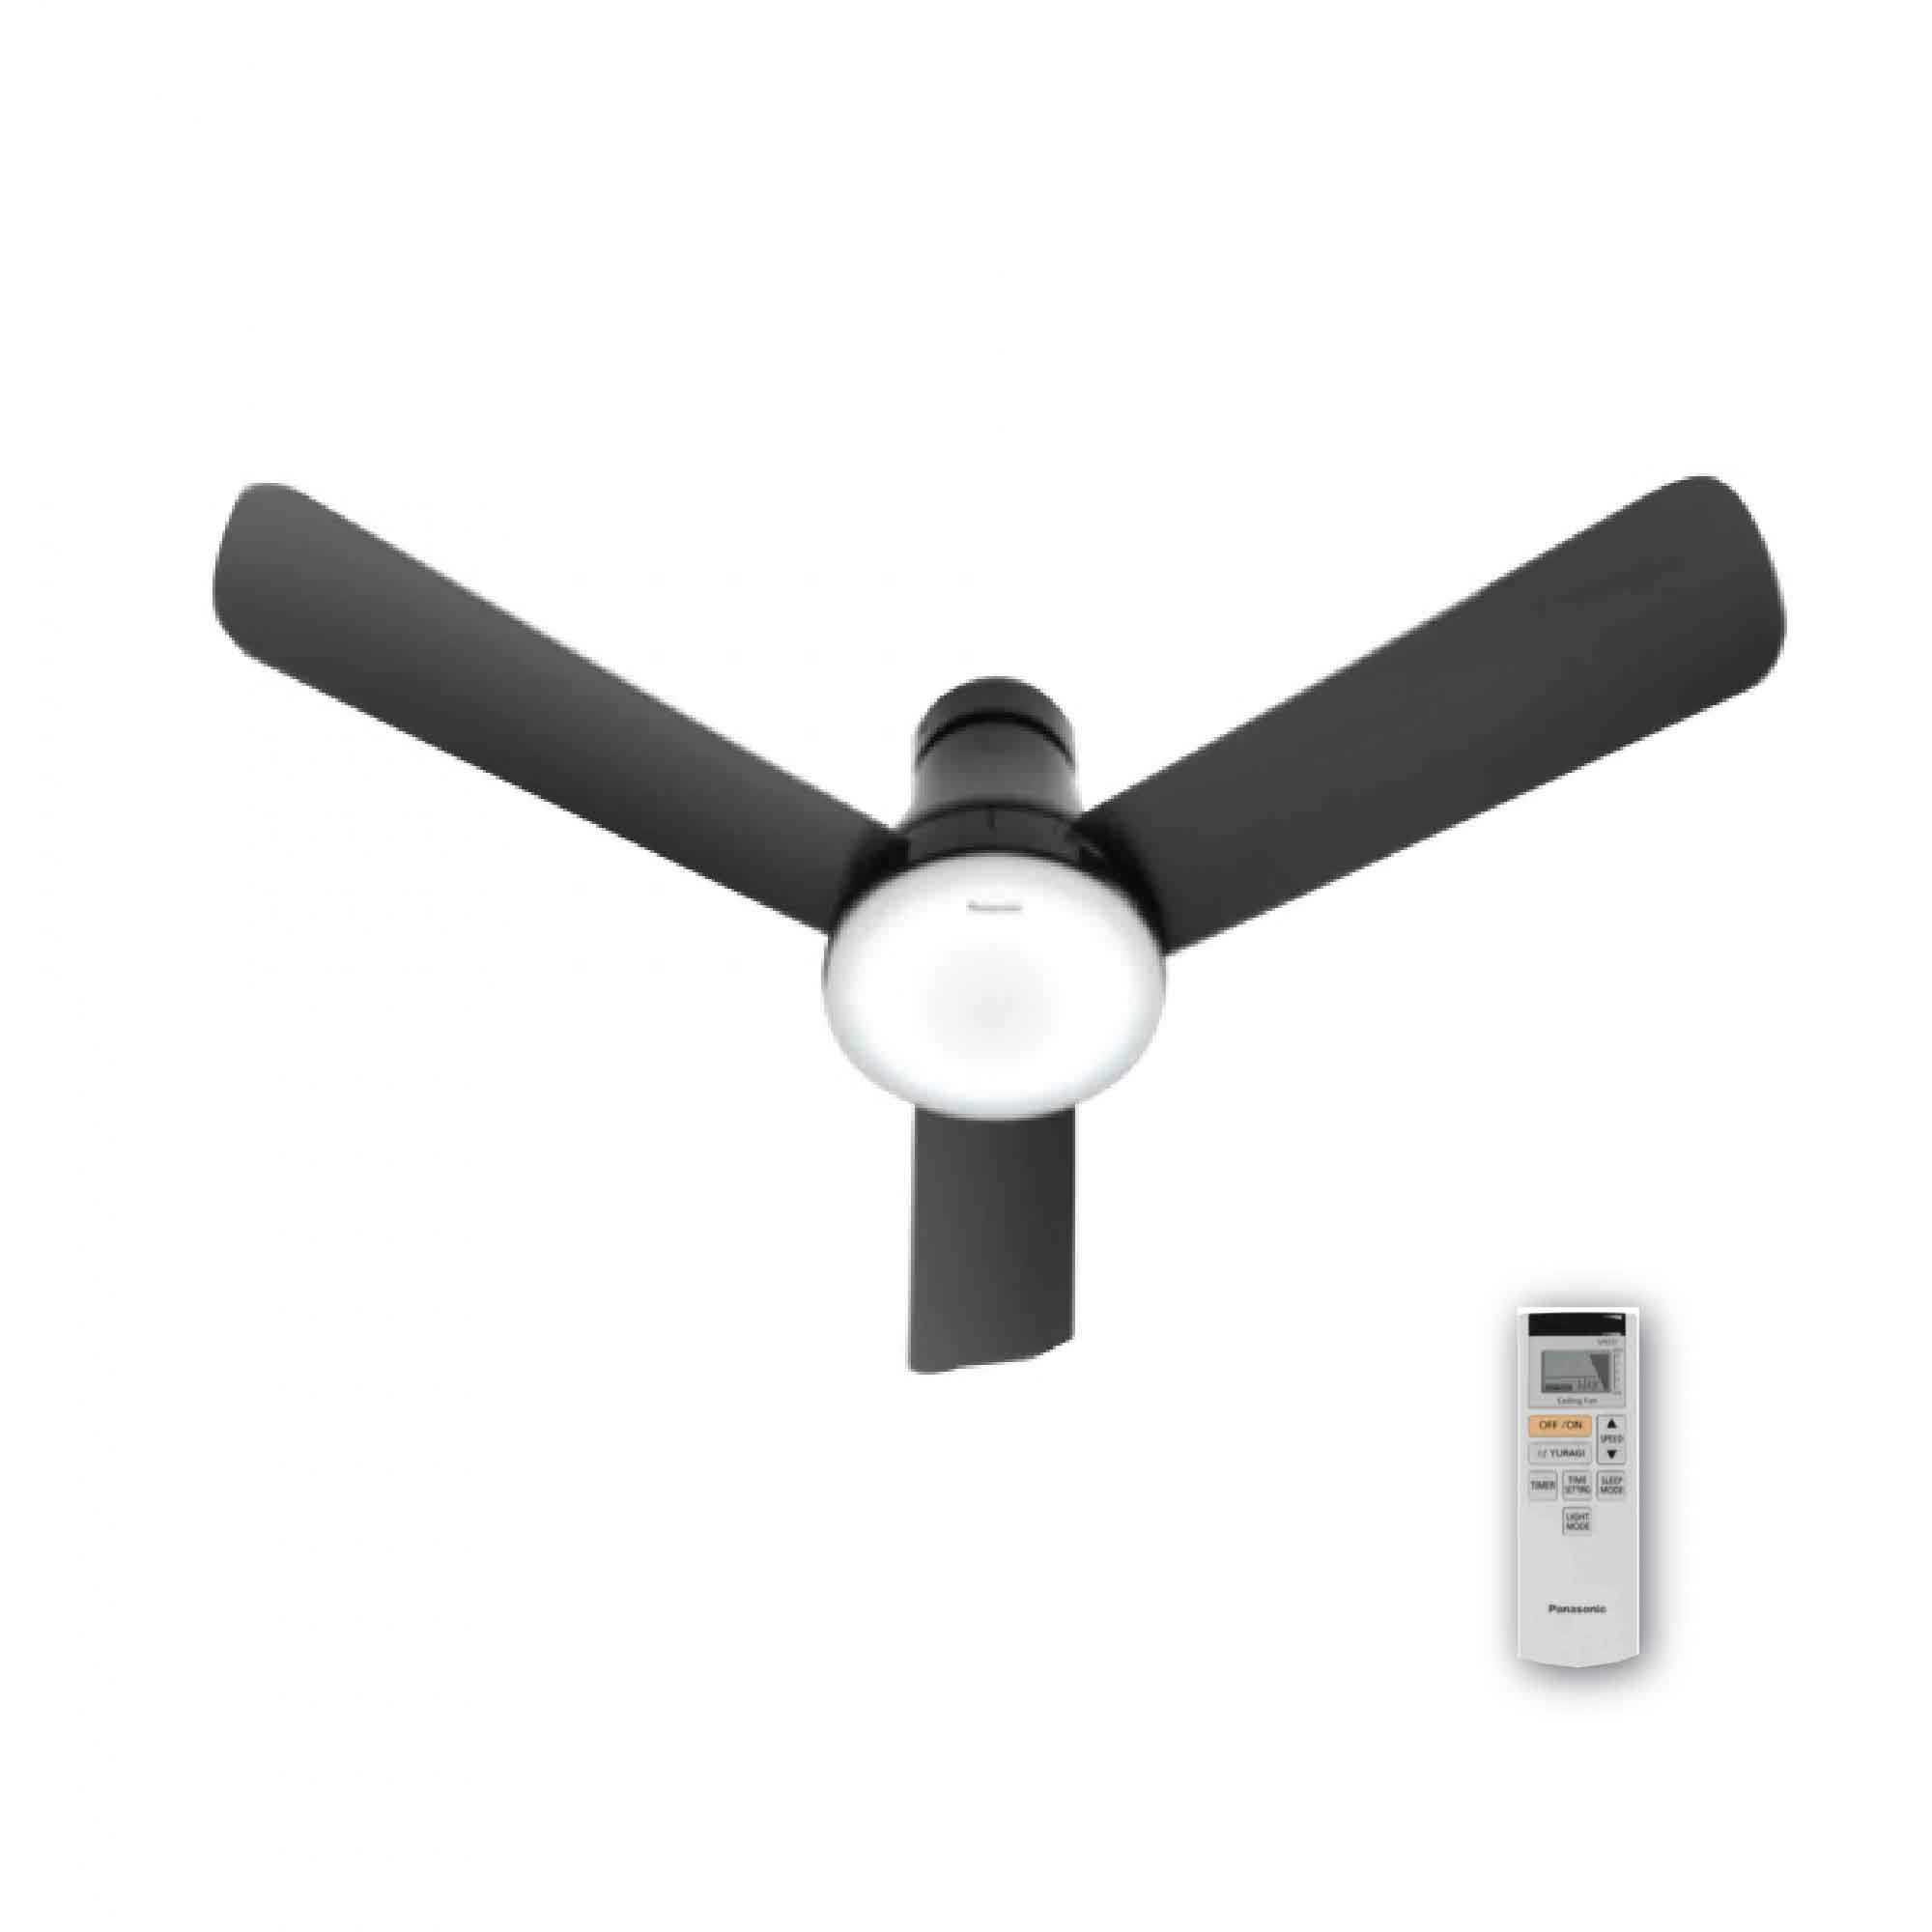 Panasonic Baby Ceiling Fan F M12gx Vb End 5 2 2020 8 46 Pm